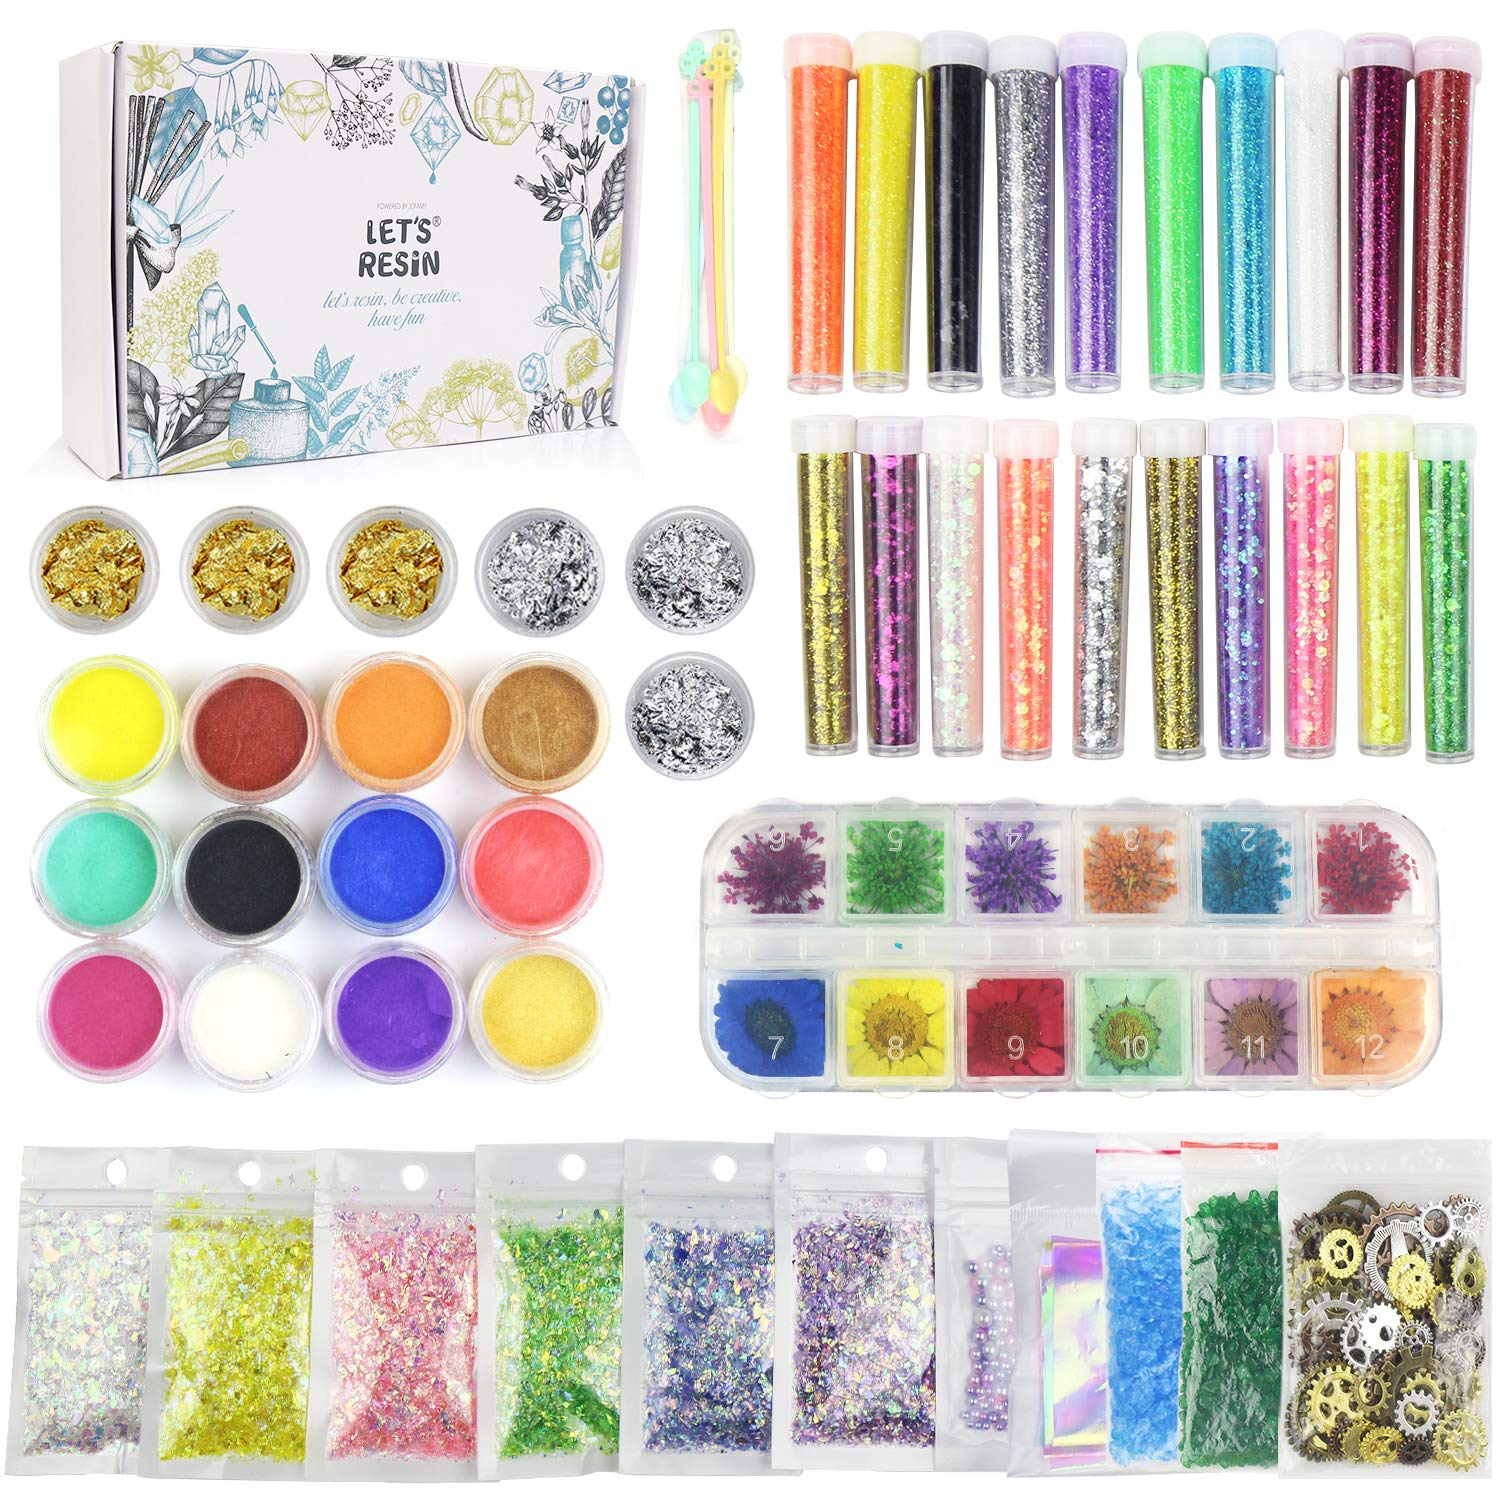 50 Pack Resin Jewelry Making Supplies Kit LET'S RESIN Art Craft Supplies for Resin, Slime, Nail Art, DIY Craft, Including Glitter Sequins,Pearl Pigment, Mylar Flakes, Dry Flowers, etc by LET'S RESIN